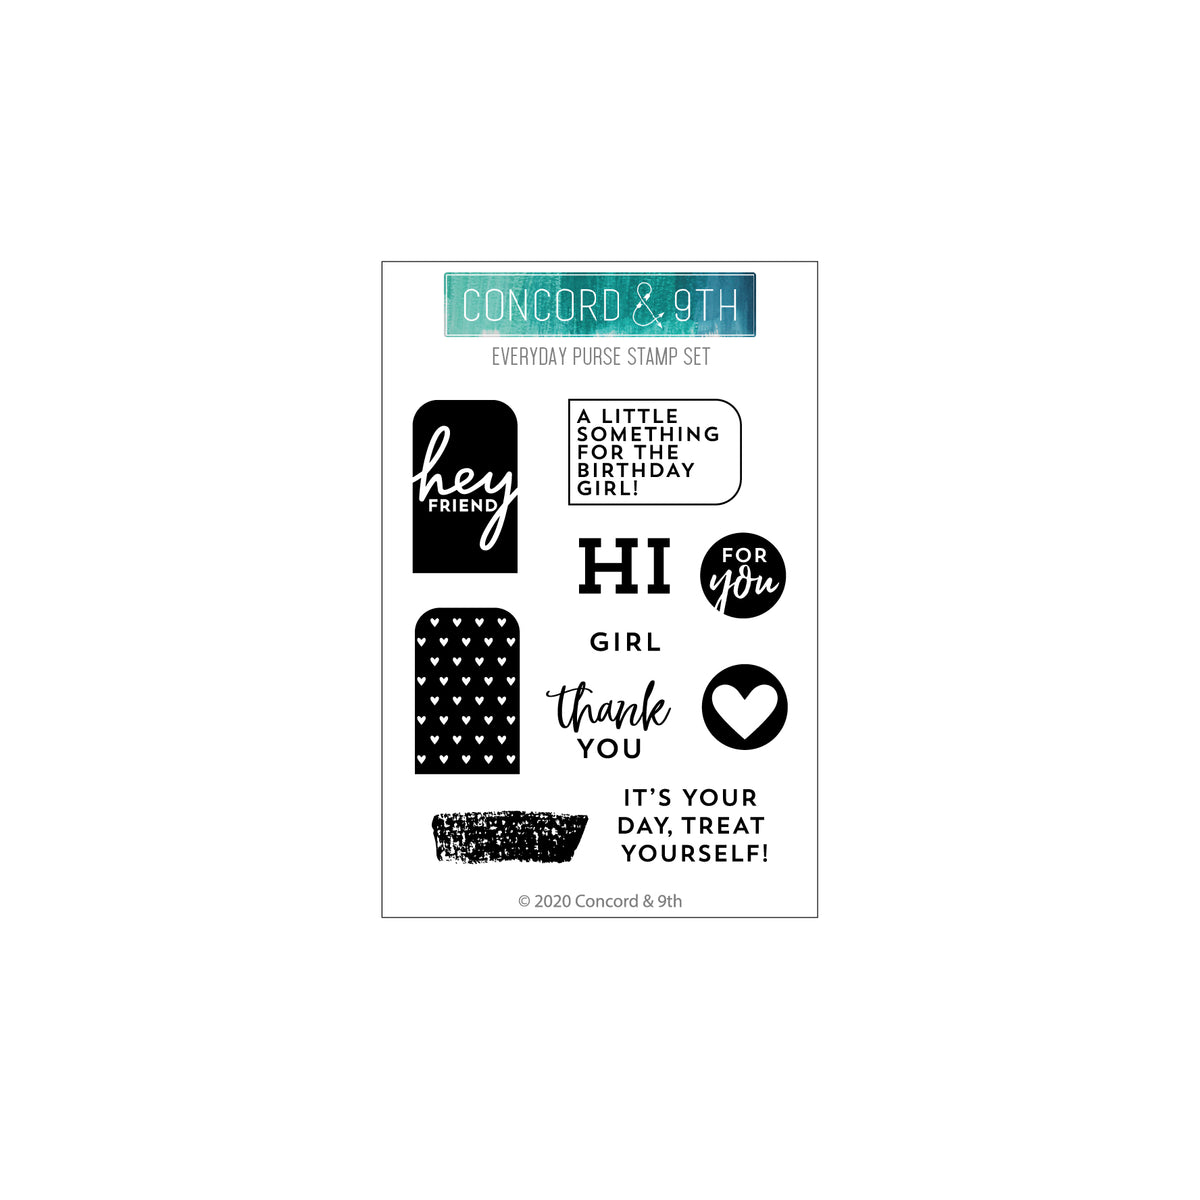 Everyday Purse Stamp Set